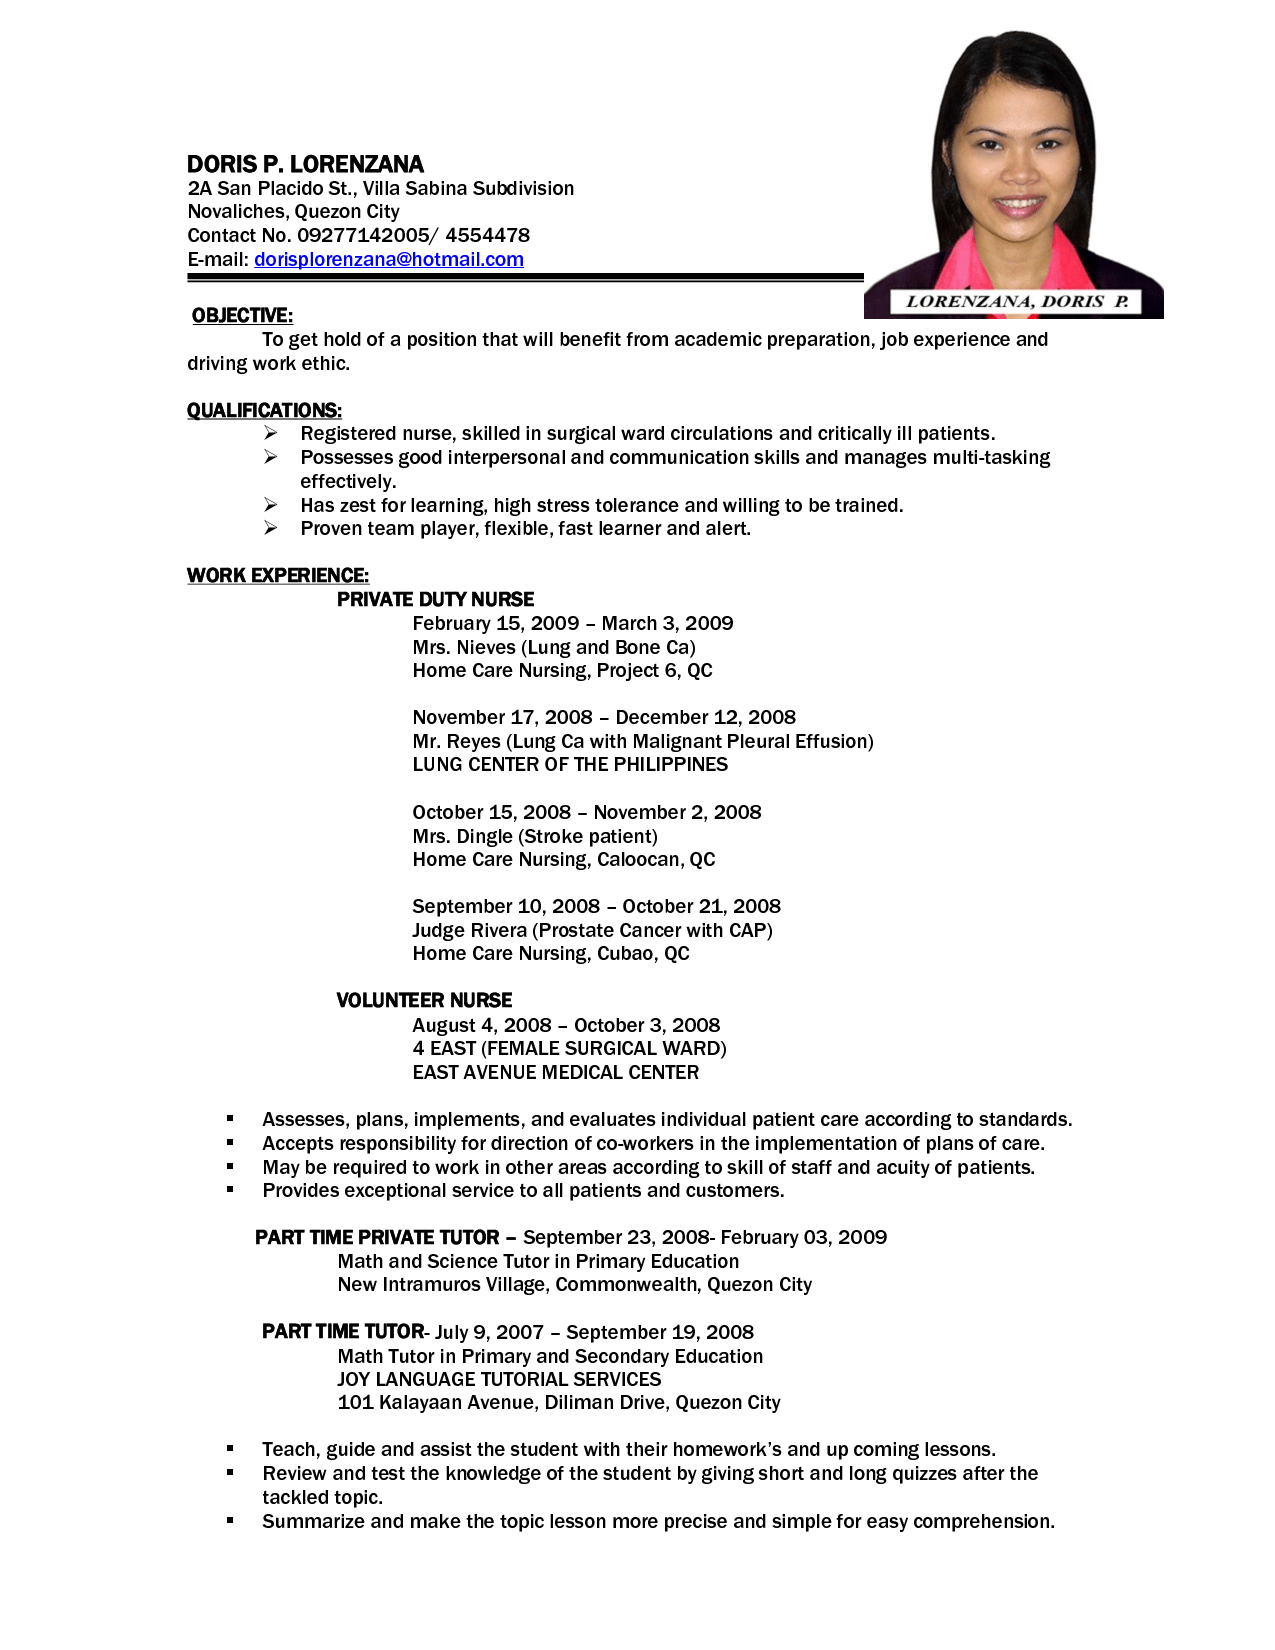 Building A Good Resume Cppmusic Resume Format Nursing Job